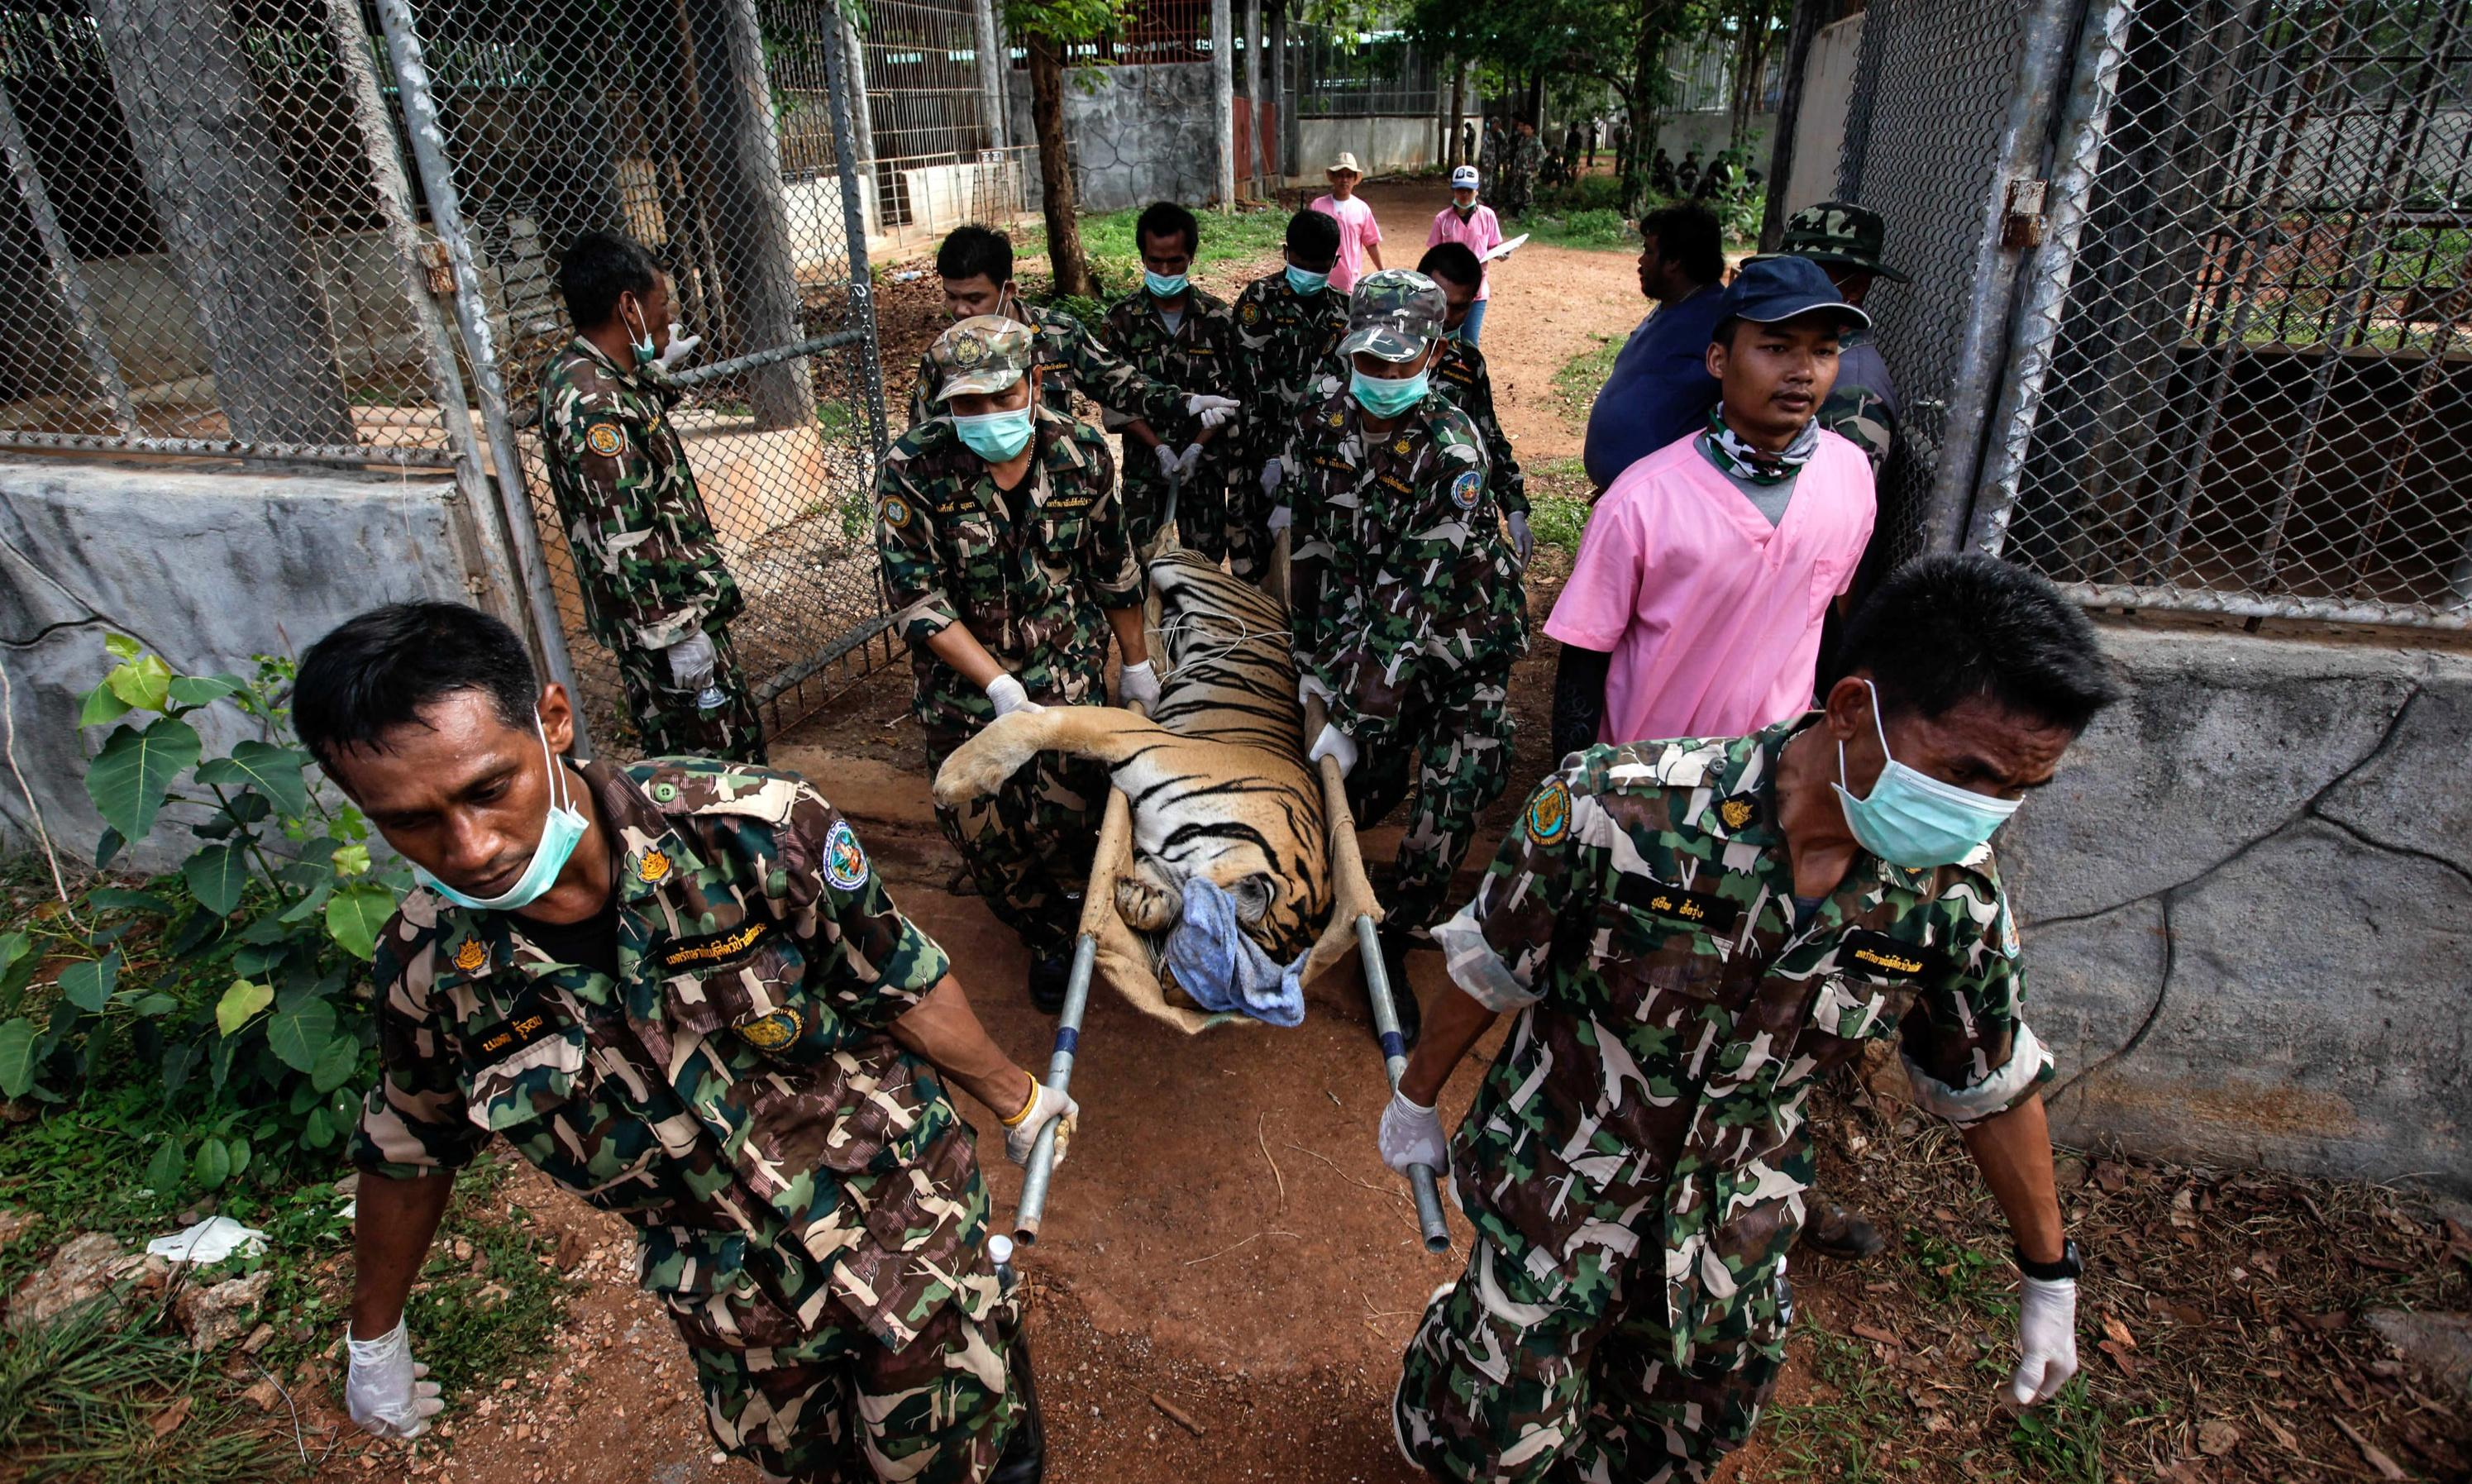 Half of tigers rescued from Thai temple have died, officials say